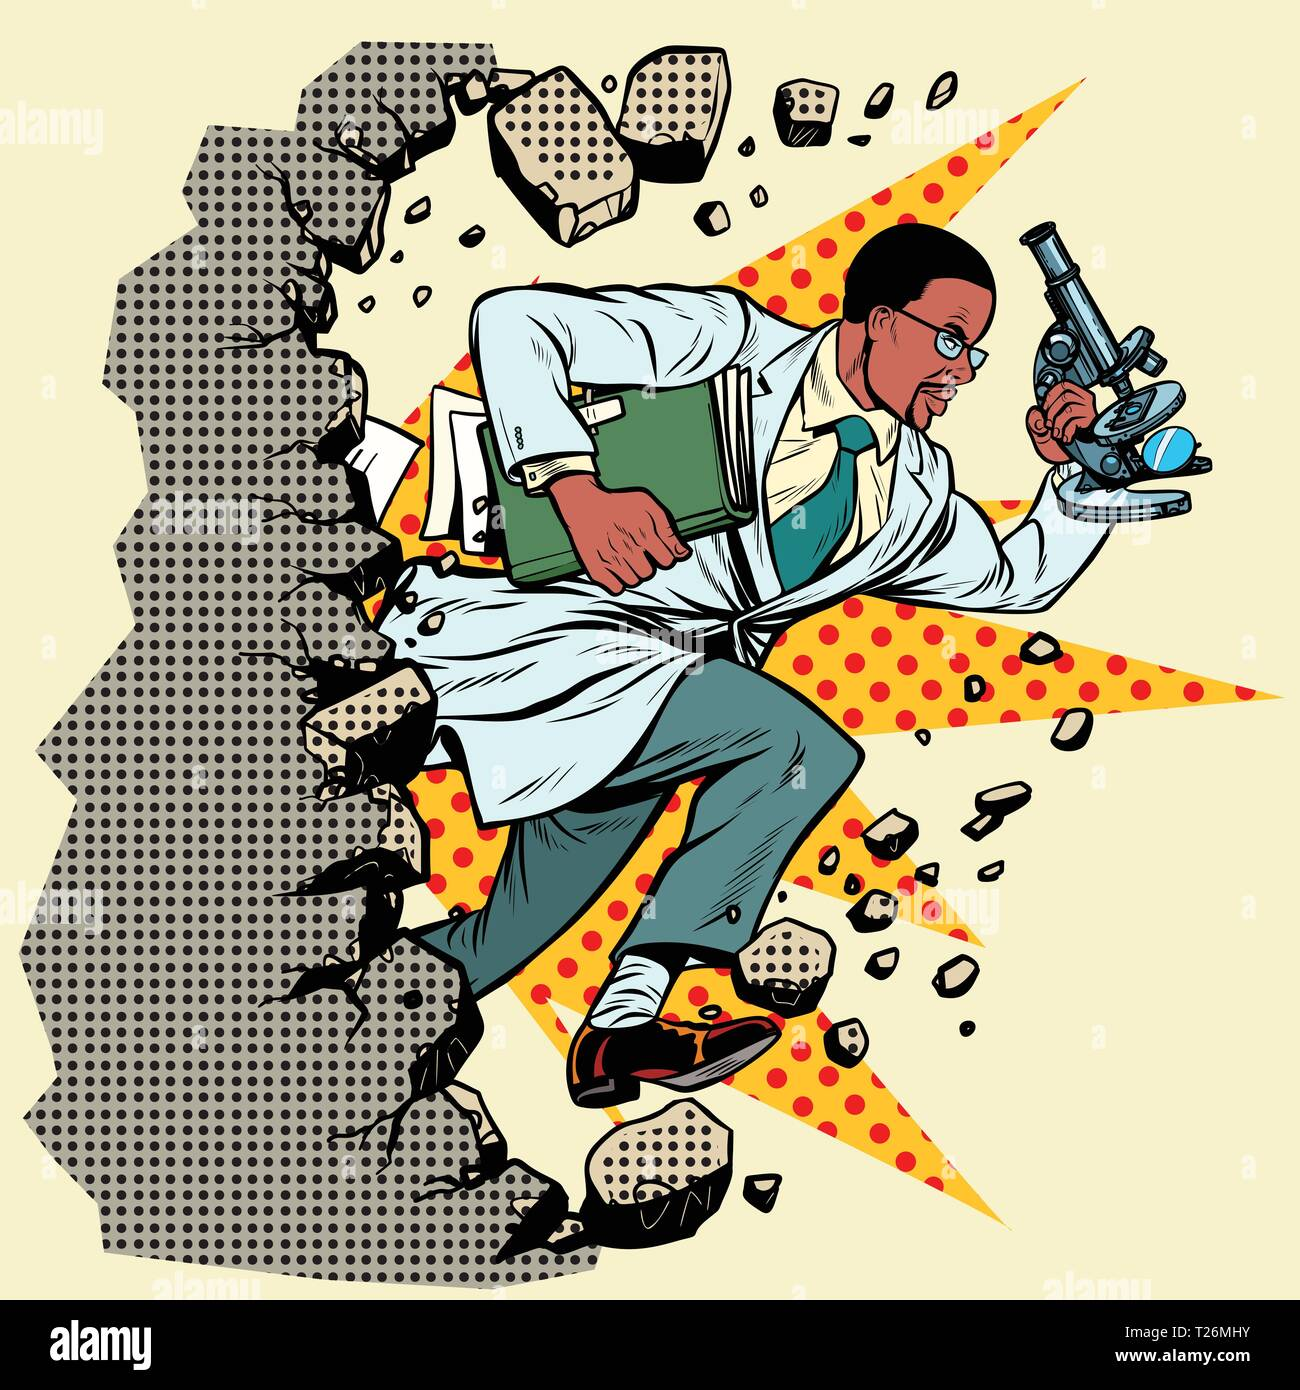 african scientist with microscope breaks a wall, destroys stereotypes. Moving forward, personal development. Pop art retro vector illustration vintage - Stock Vector